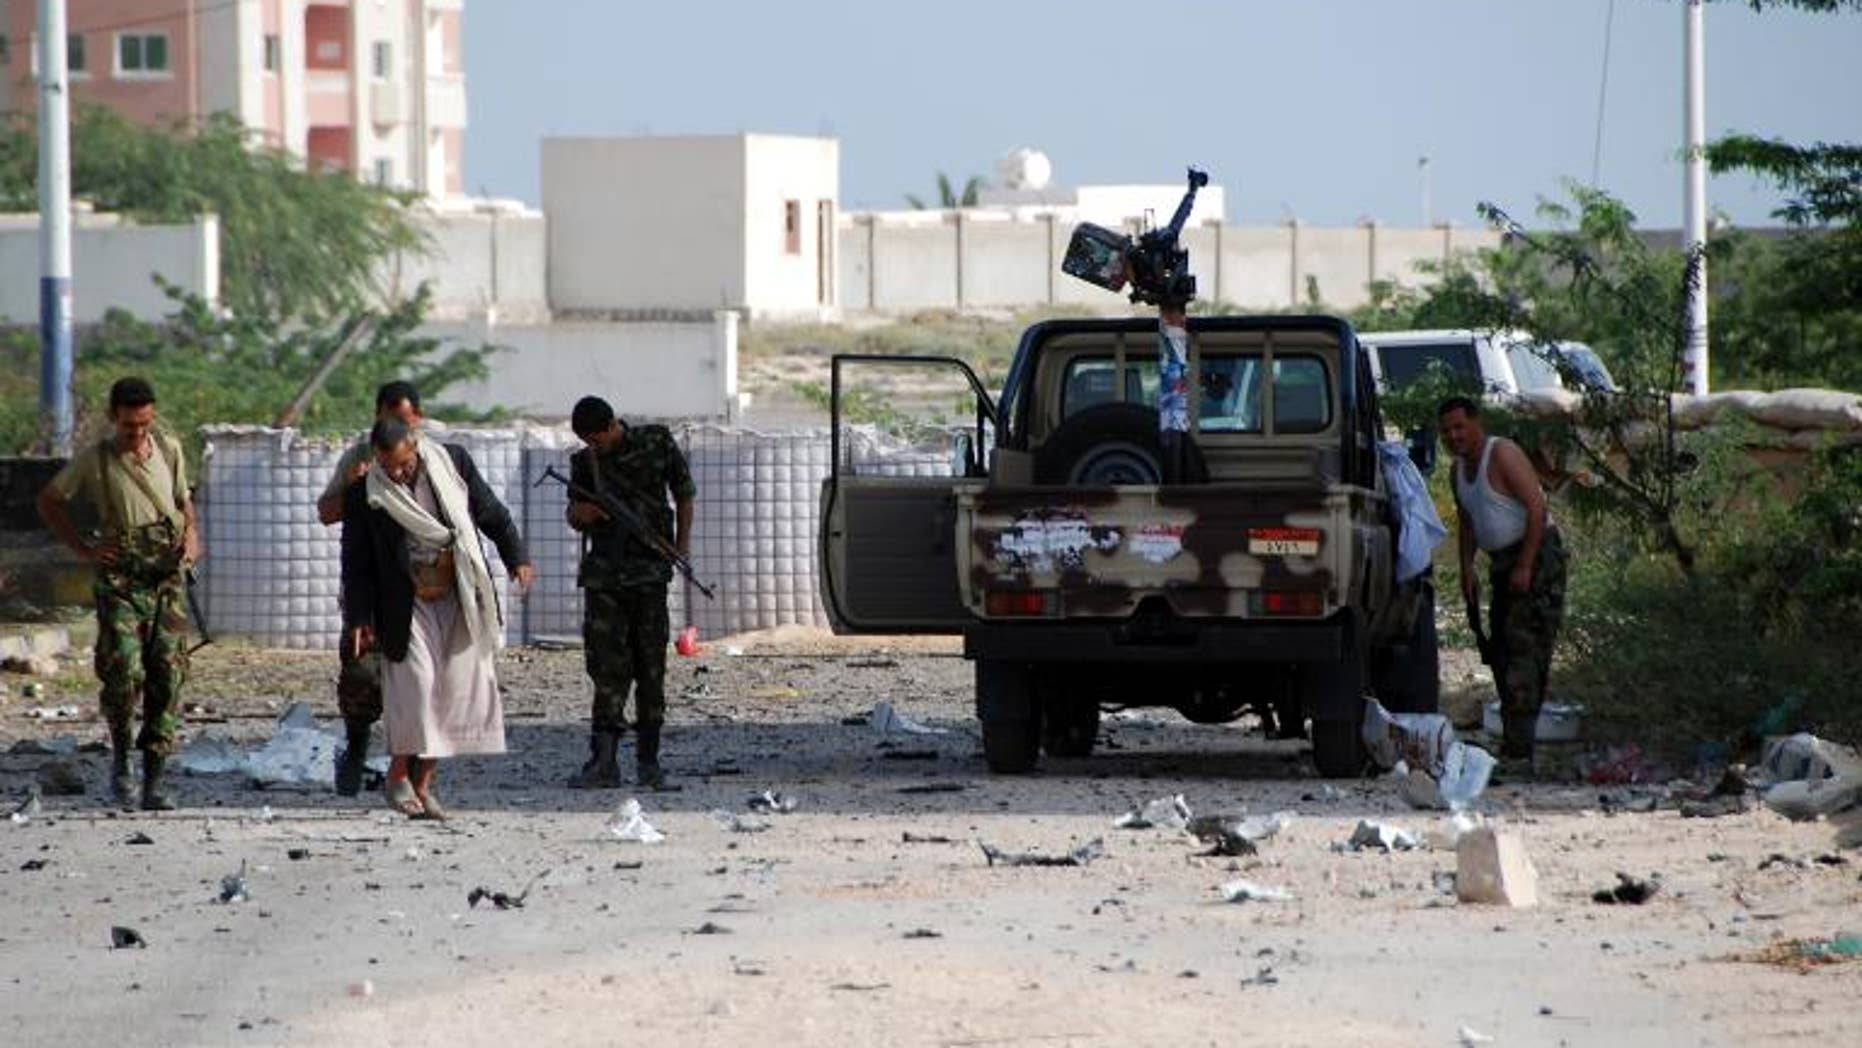 Yemeni security forces are seen along a main road littered with debris after a suicide bomber blew up a vehicle outside a presidential palace in Mukalla on February 25, 2012